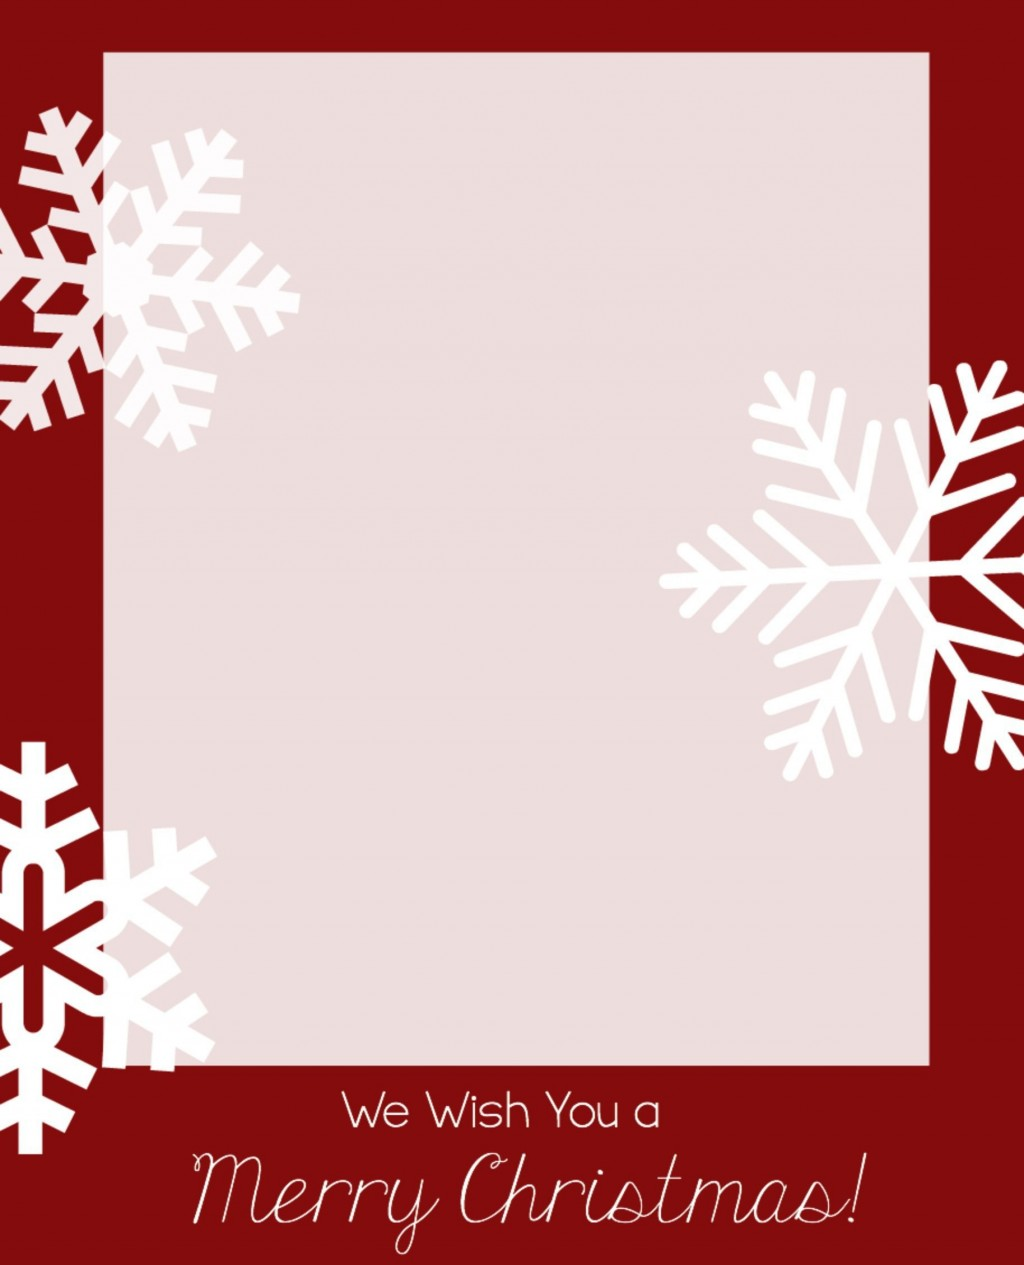 005 Simple Christma Card Template Free Download Photo  Xma PlaceLarge